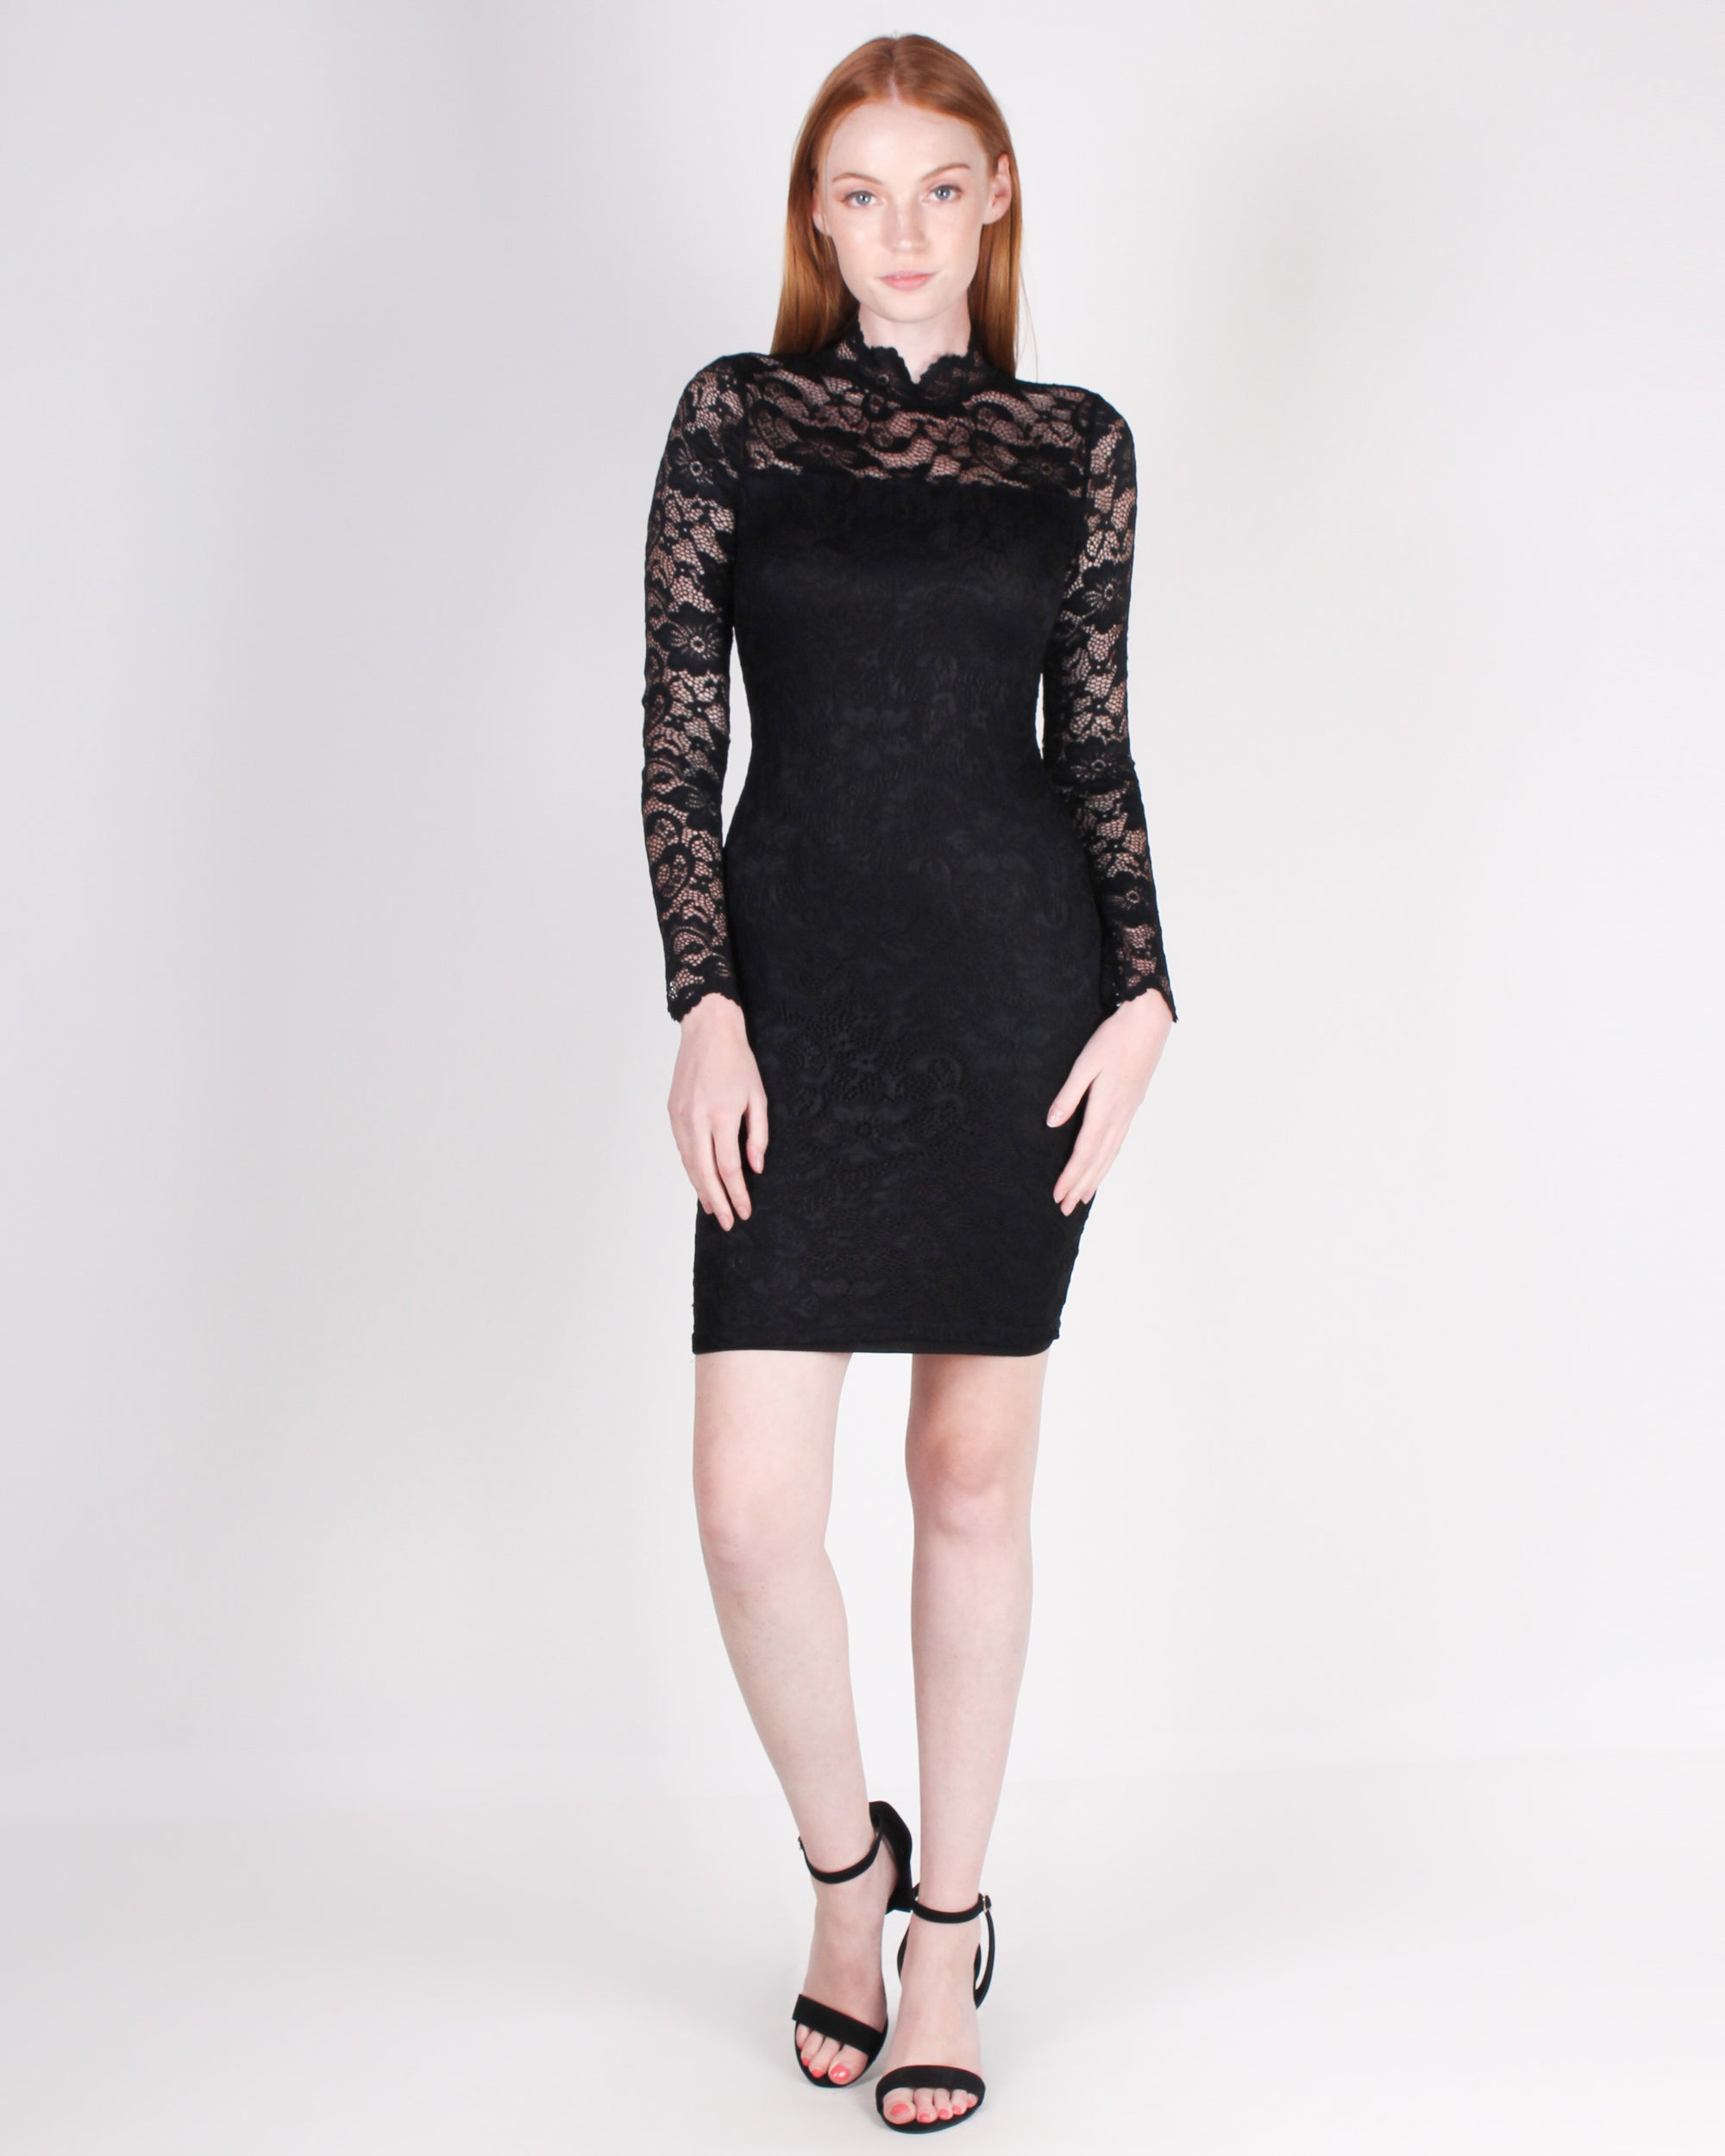 SHop Q Fashion Q Hats Off to a Lacing Good Time Bodycon Dress (Black) LD36066L